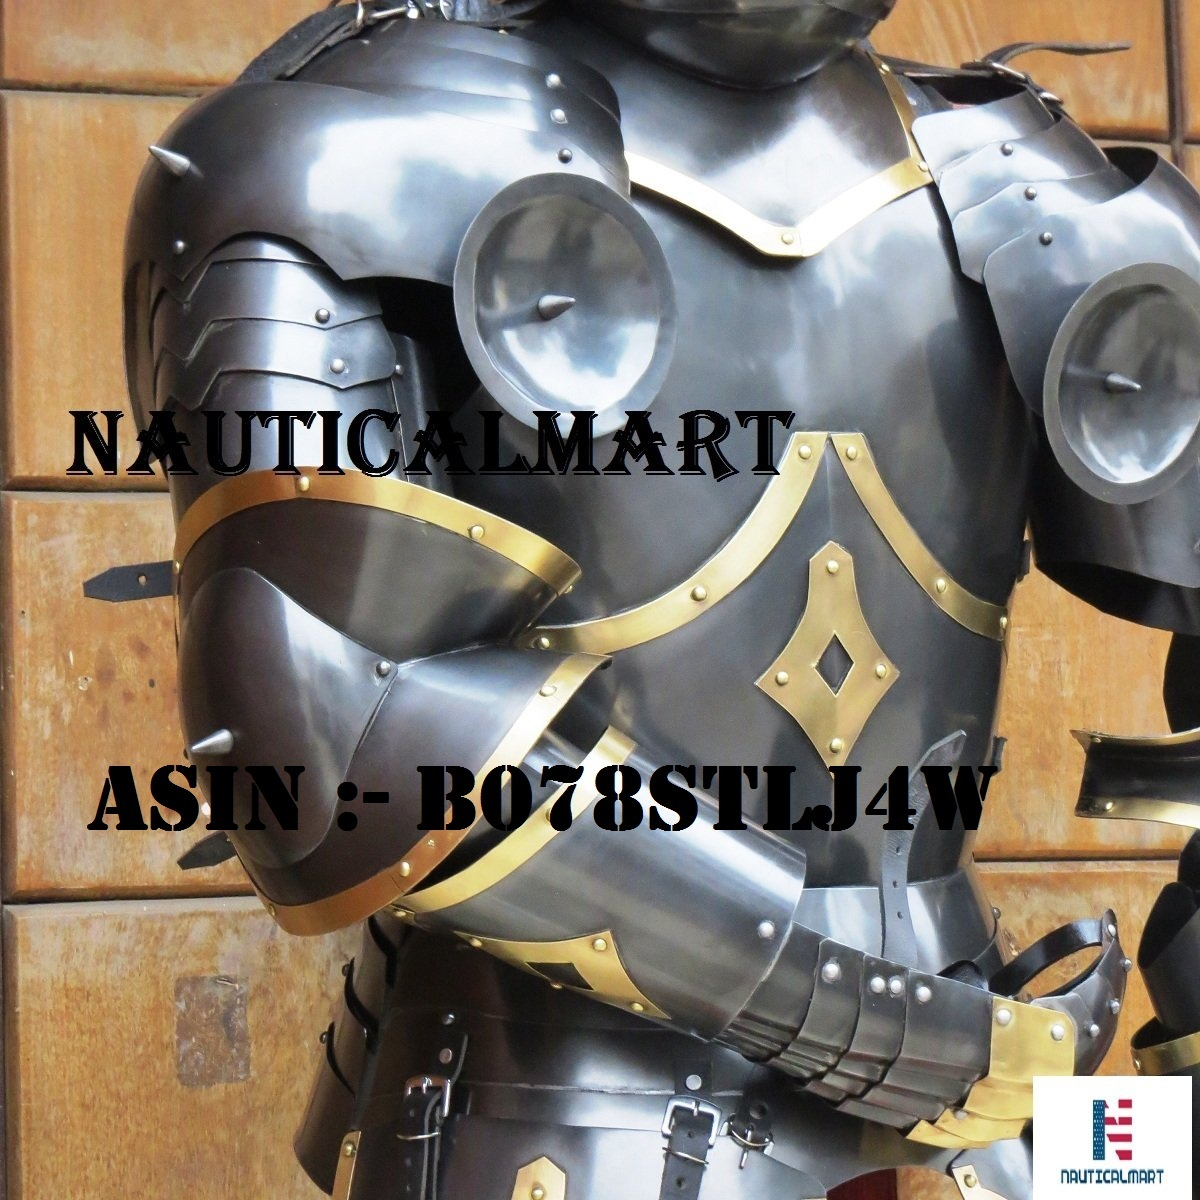 NAUTICALMART Medieval Knight Half Suit of Armor with Horns